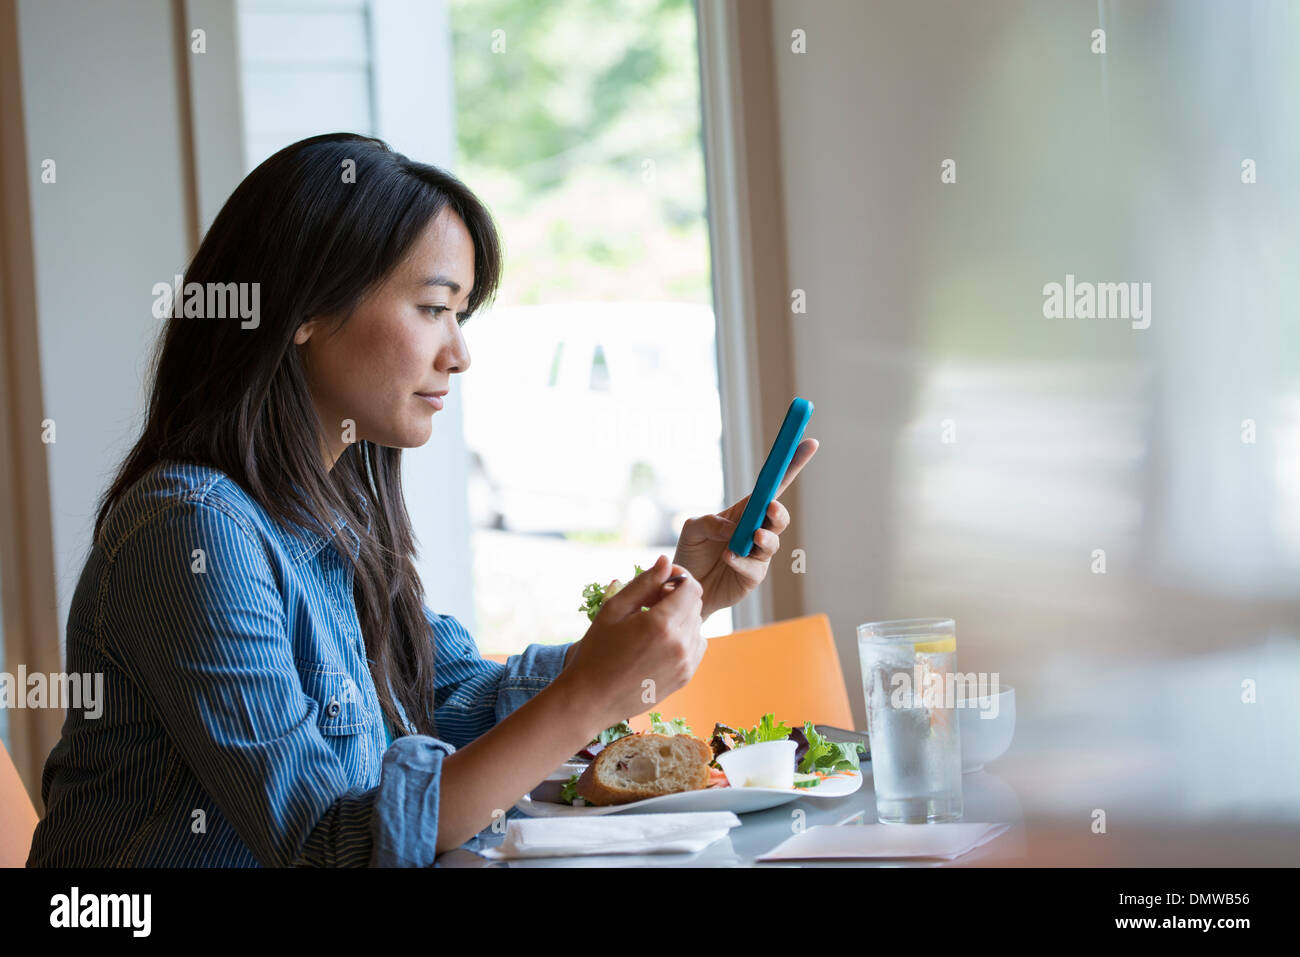 A woman eating a salad and checking her phone. - Stock Image